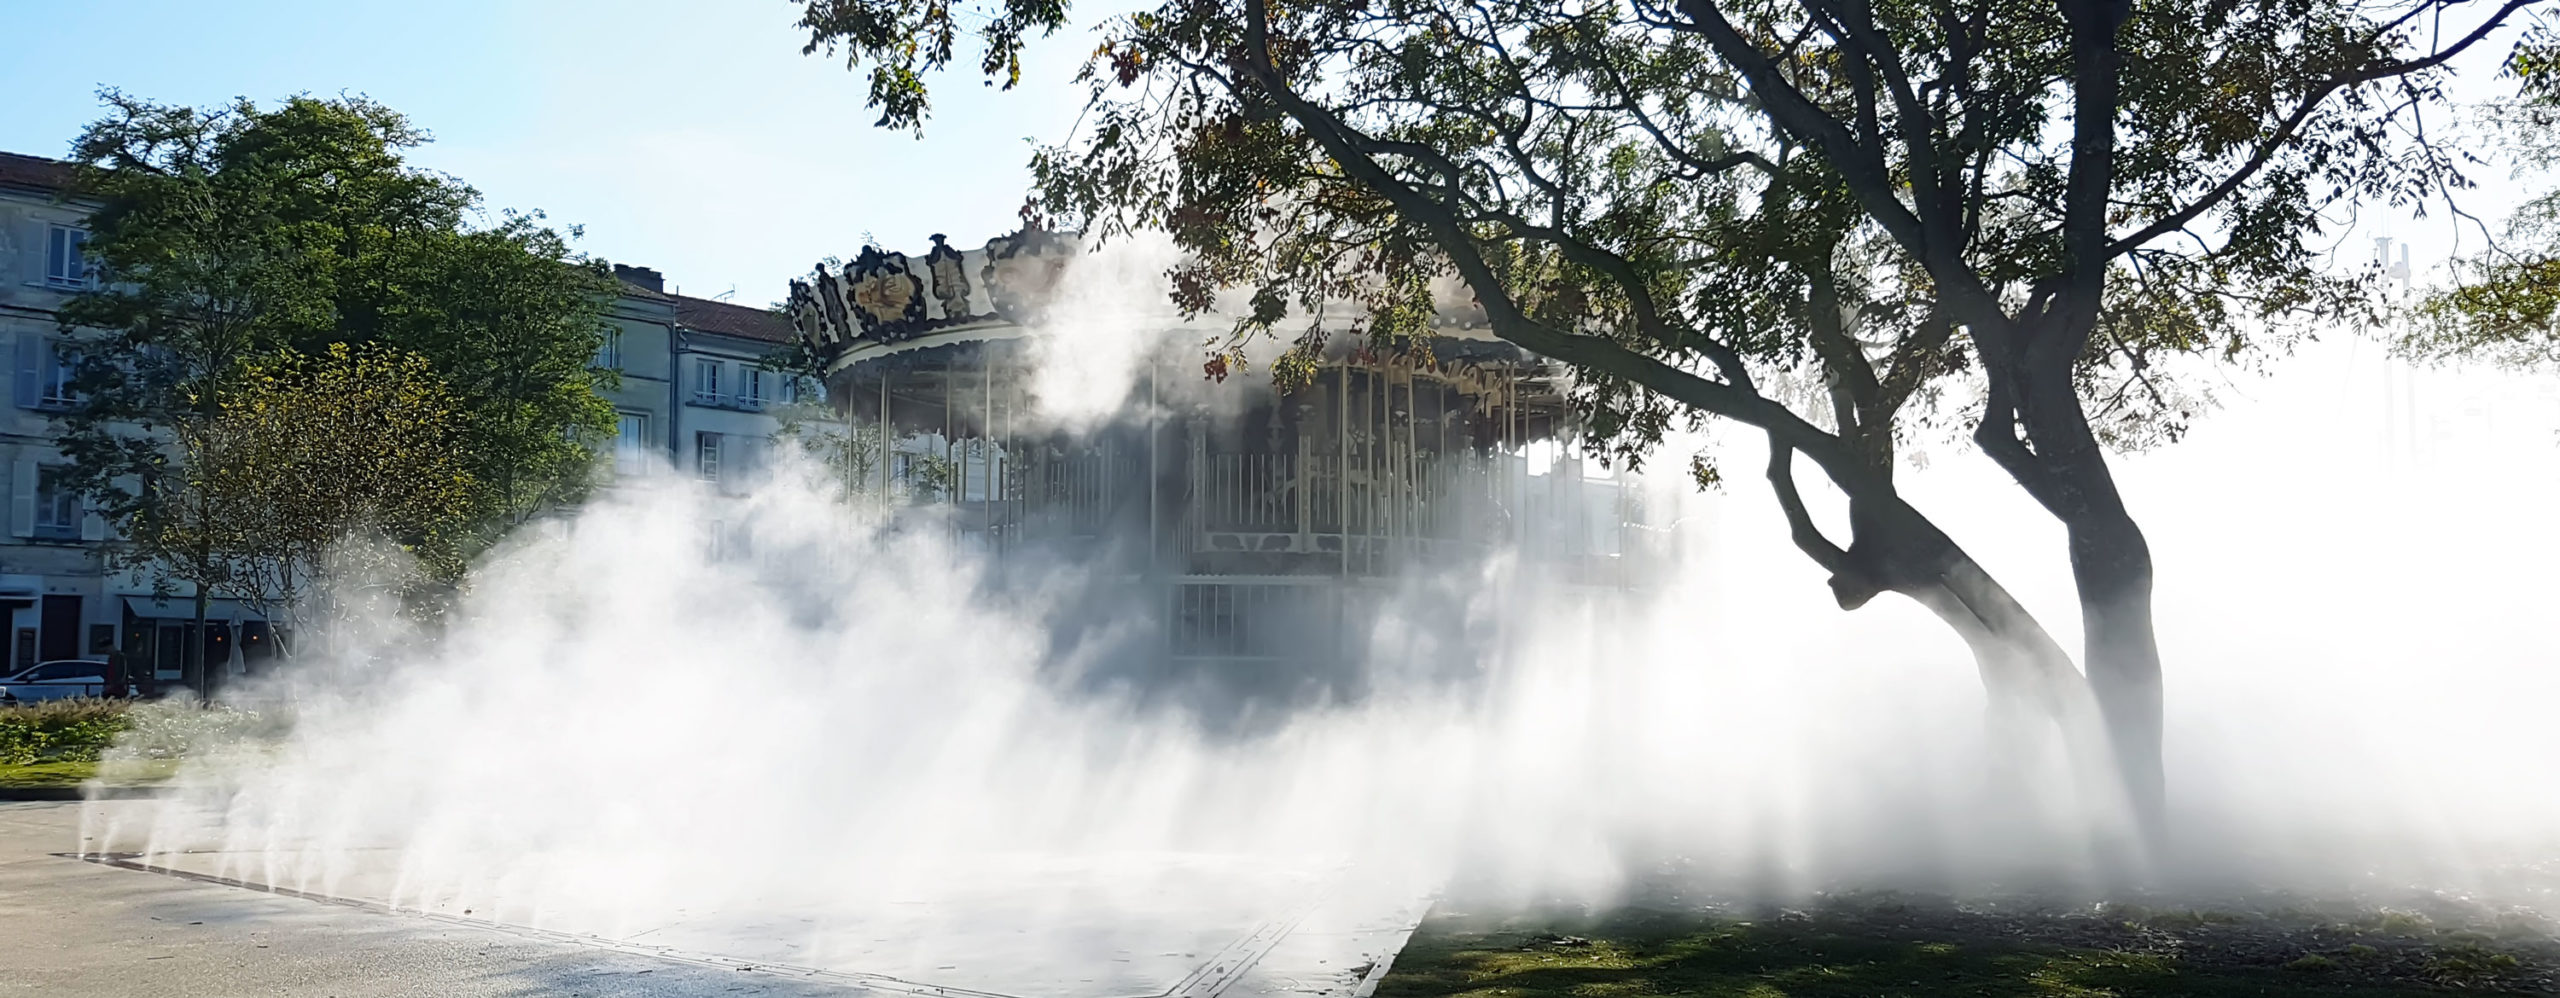 beziers jean jaures diluvial water feature fontaine fog brume fontaine